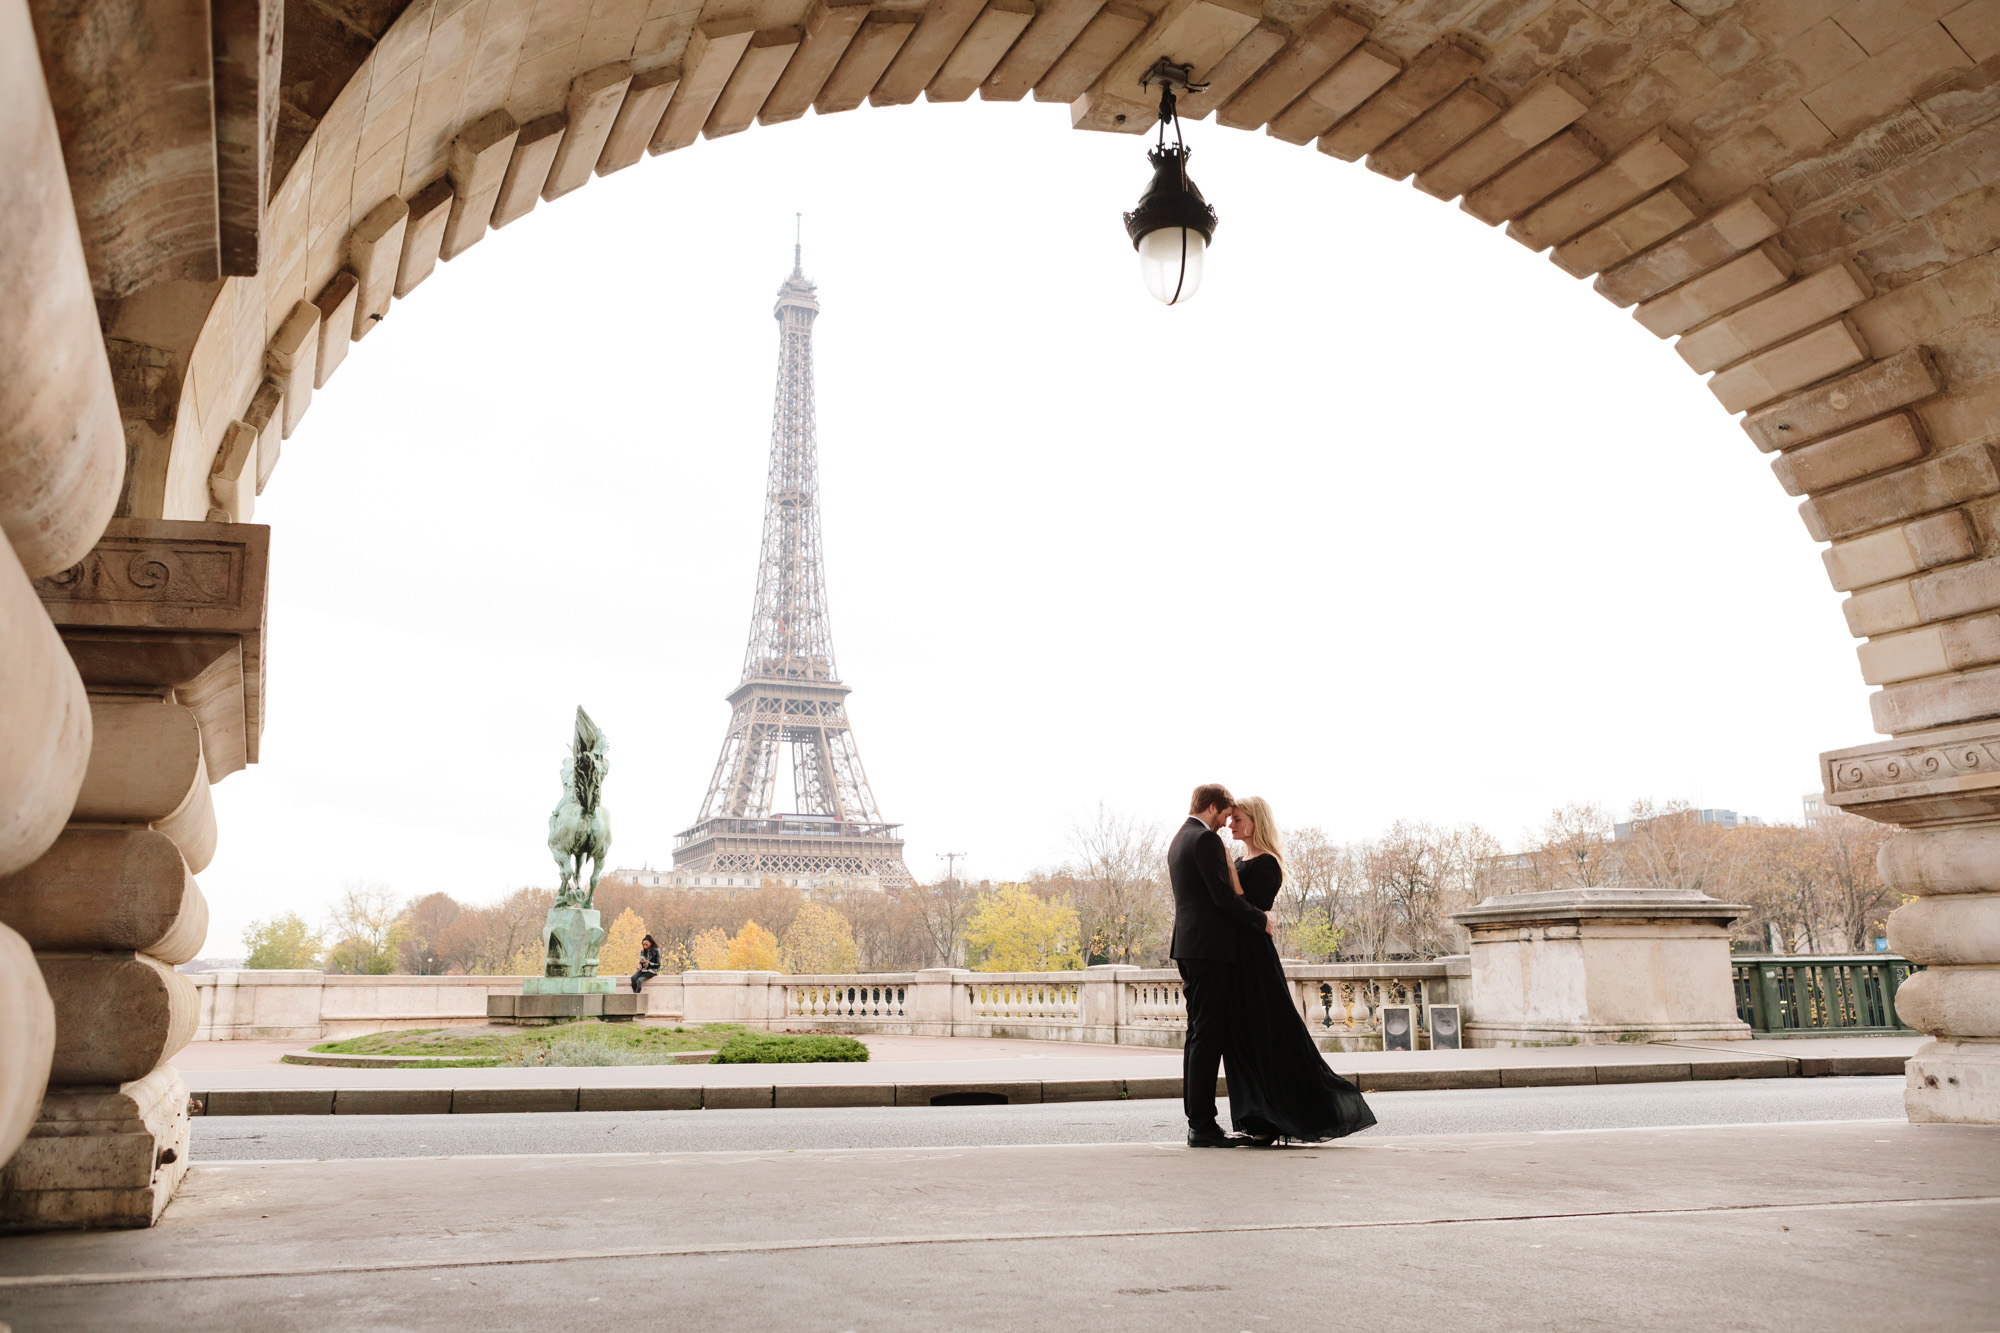 Paris Photographer Federico Guendel captured couple engagement session with the view of the Eiffel Tower at Bir Hakeim Bridge